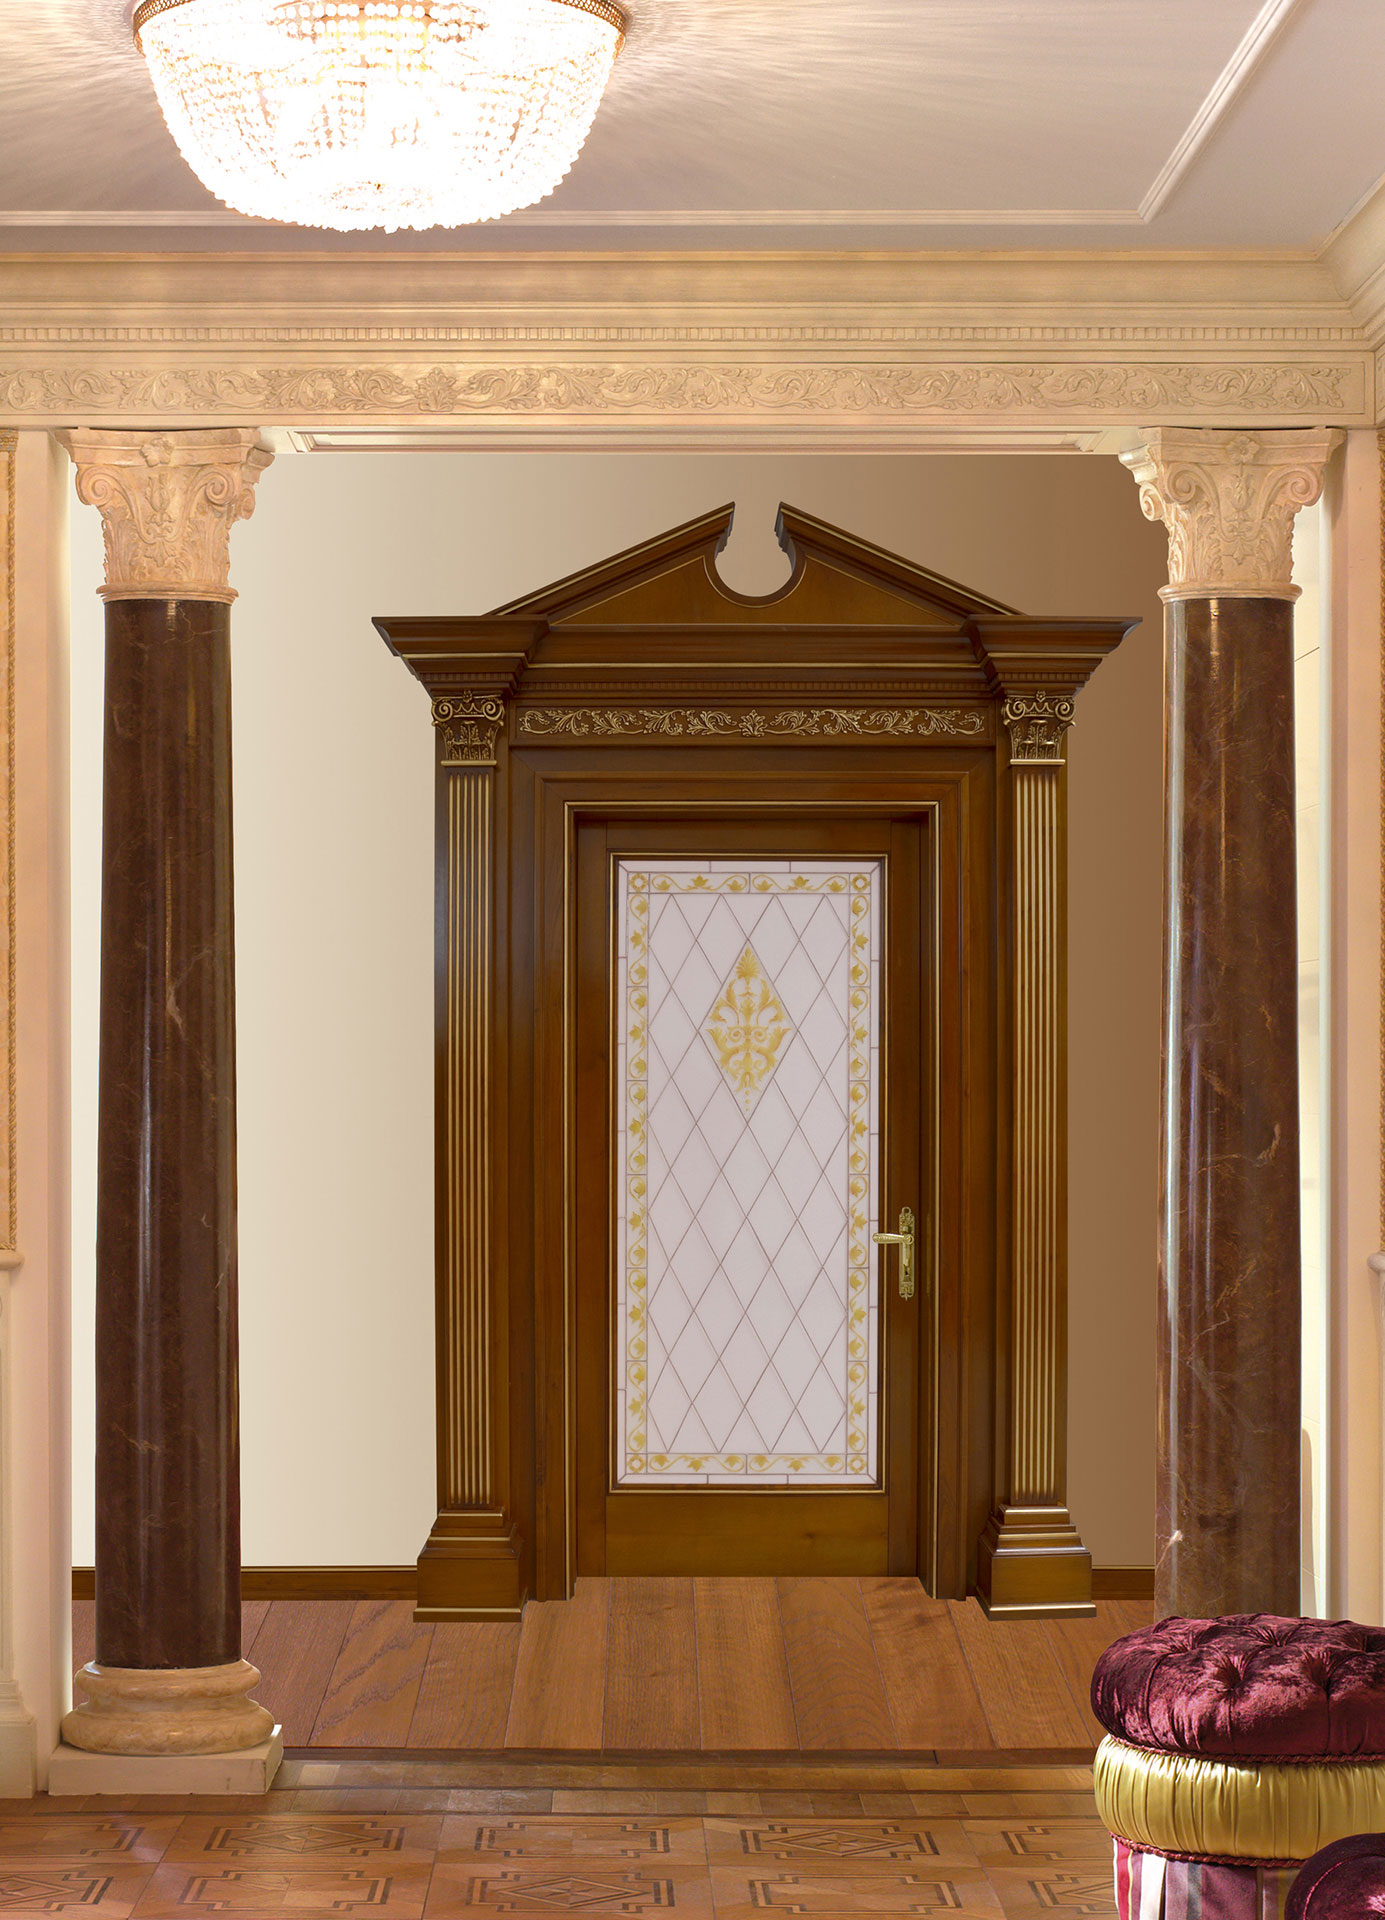 Faoma bespoke wooden and glass doorway with capitals and tympanum